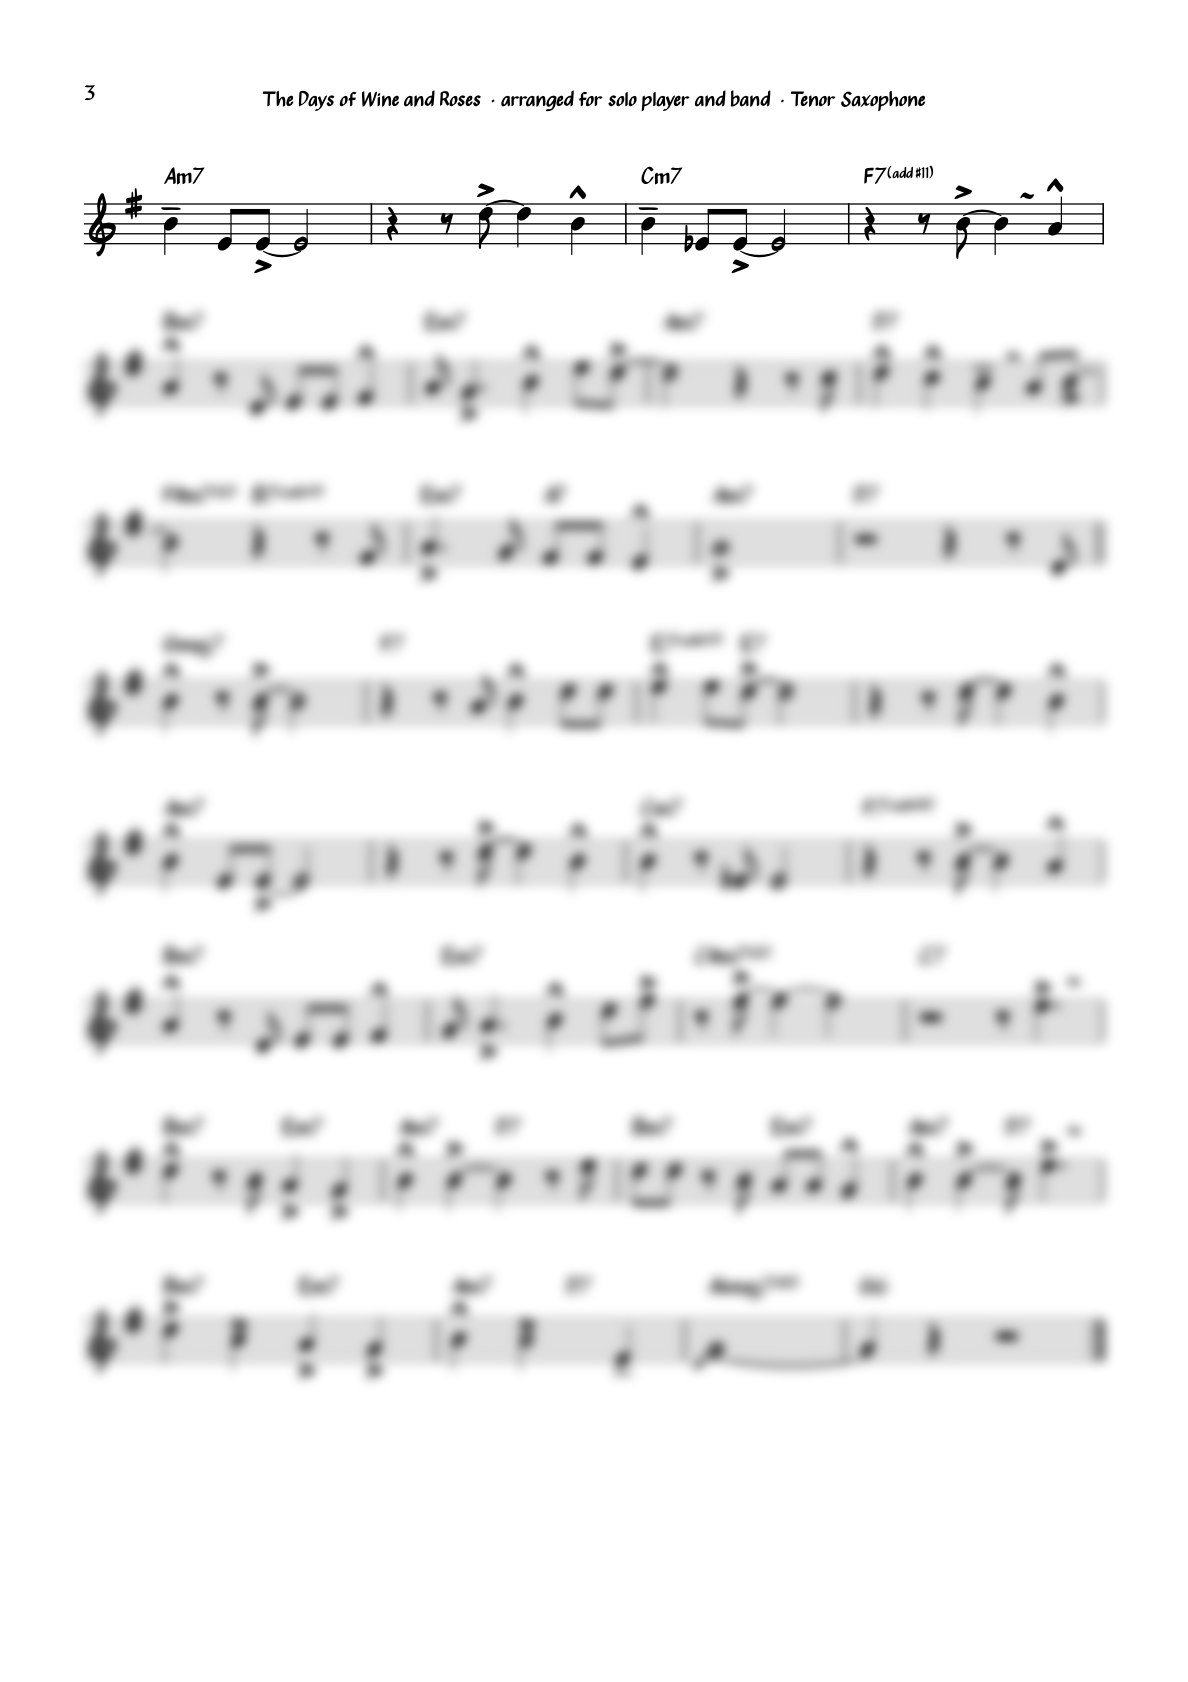 """""""The Days of Wine and Roses"""" for Tenor Saxophone including Solo Transcription"""